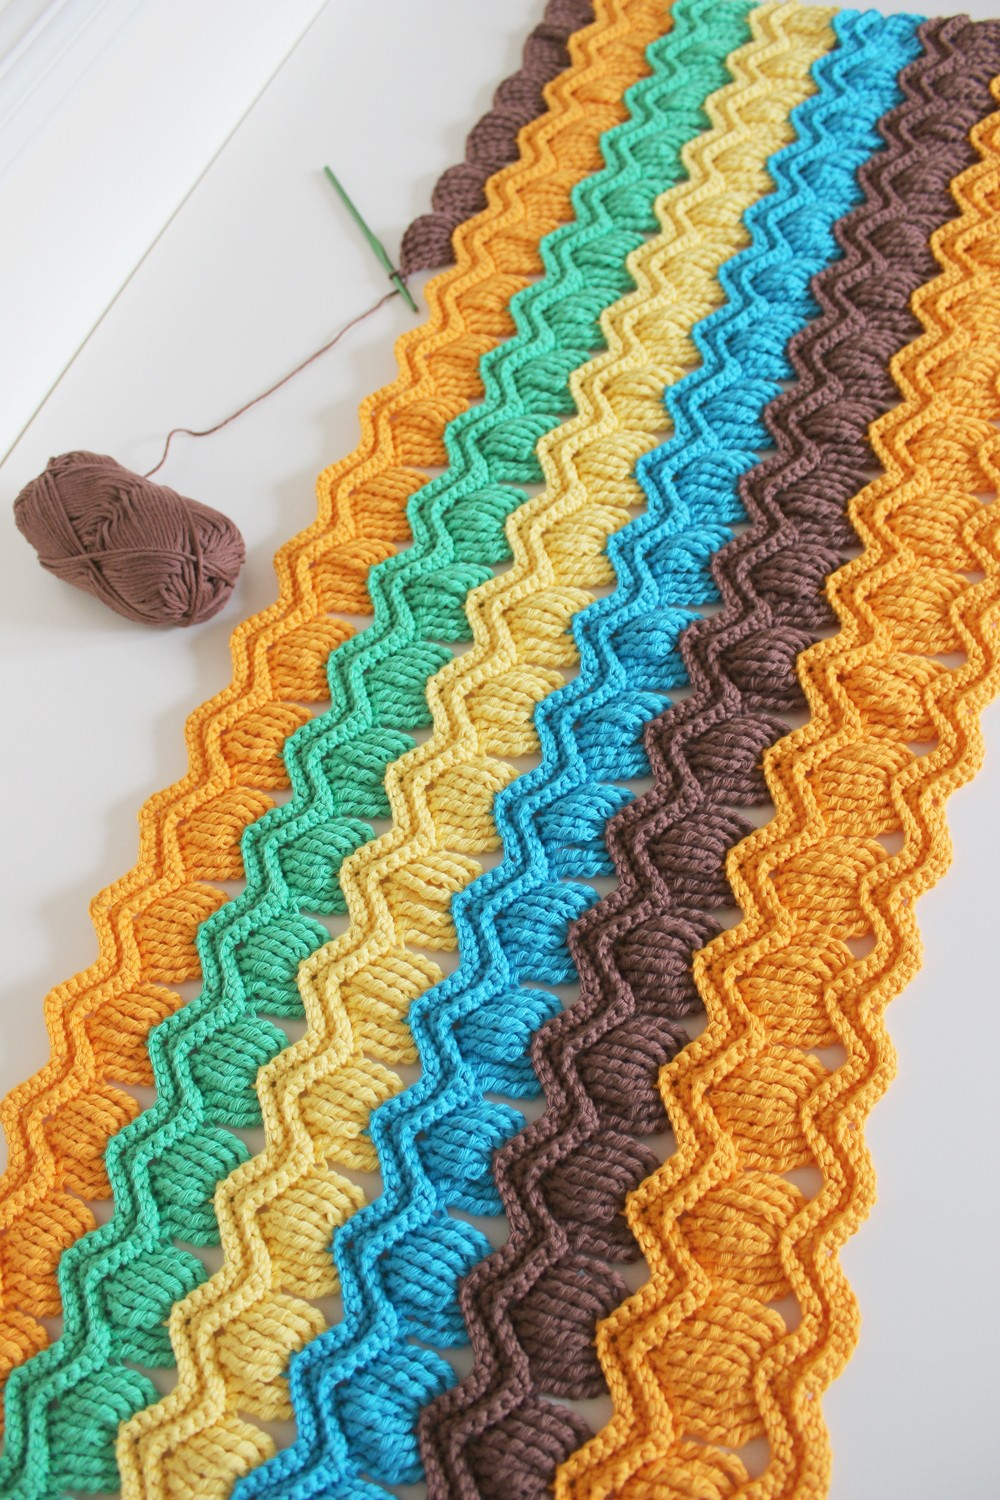 Crochet Patterns Ripple : Free Pattern] Crochet Vintage Fan Ripple Stitch